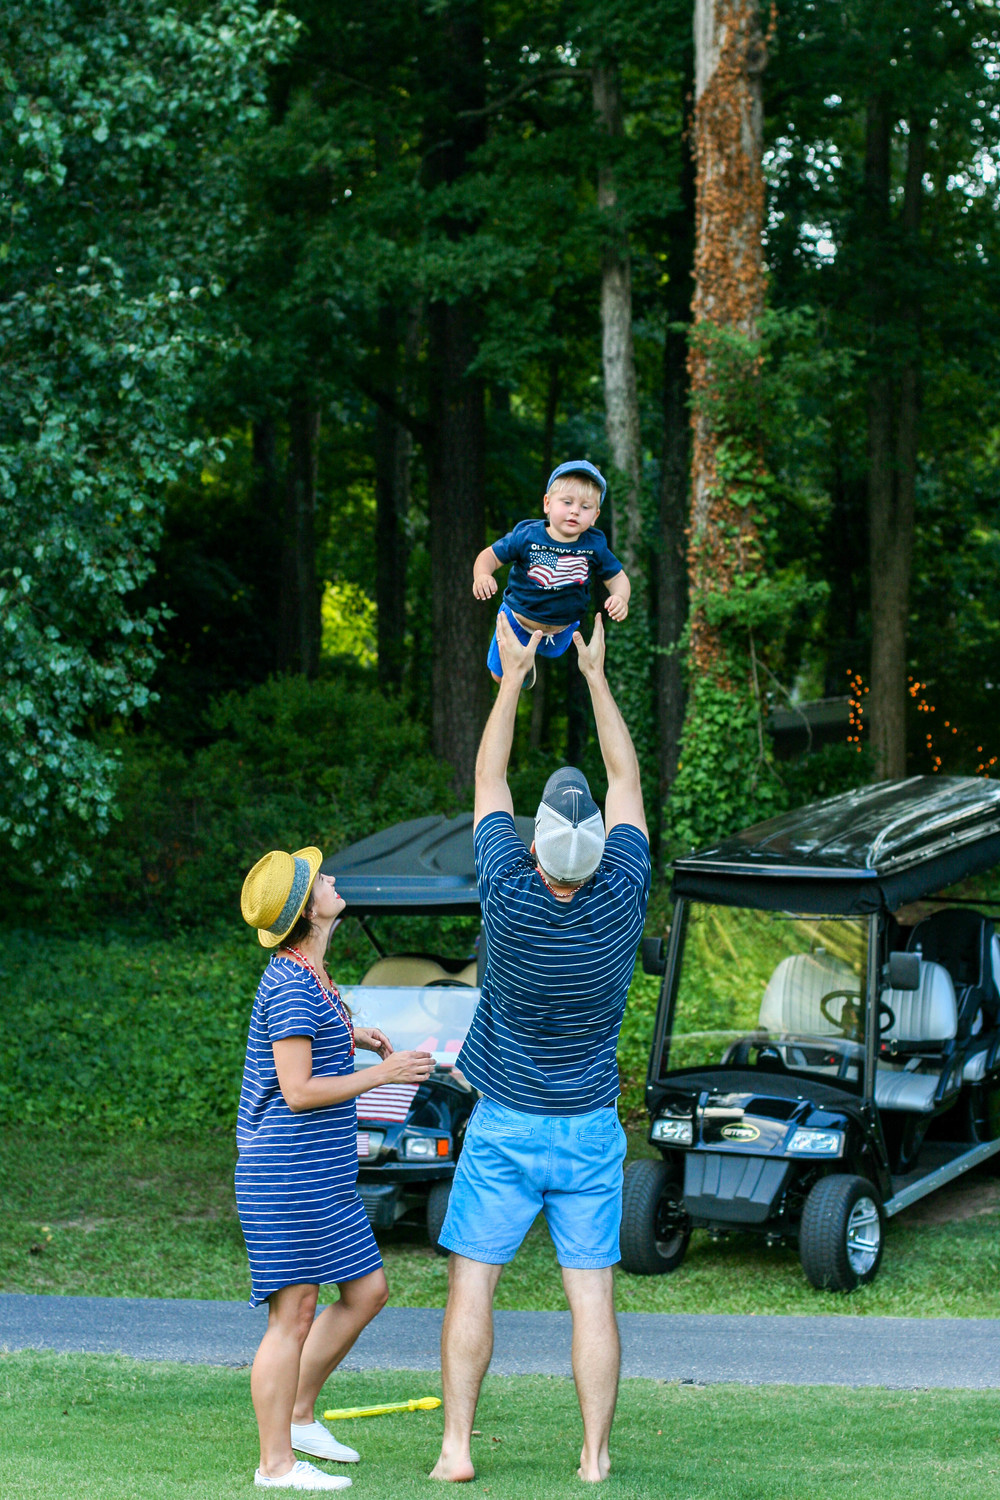 This makes me laugh because Everett looks so bored. While being tossed in the air?!